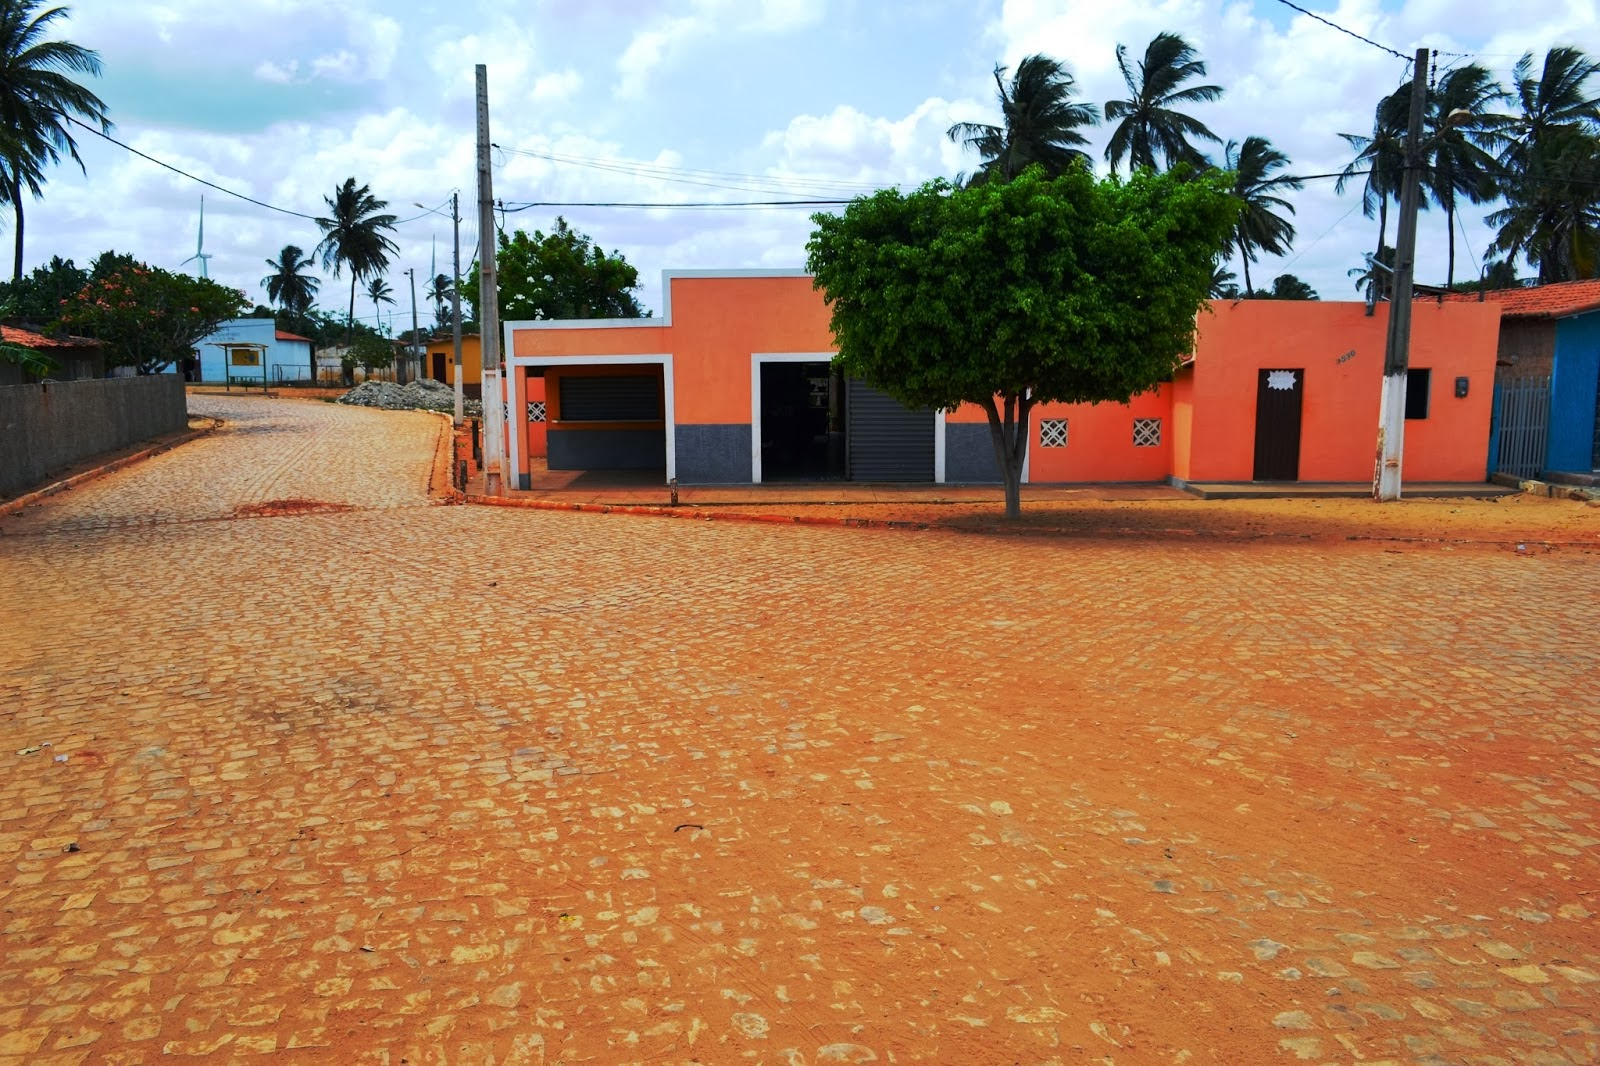 Vende-se Casa com Ponto de Comércio na Praia de Enxú Queimado/Pedra Grande-RN. Fone(084) 3555-5013